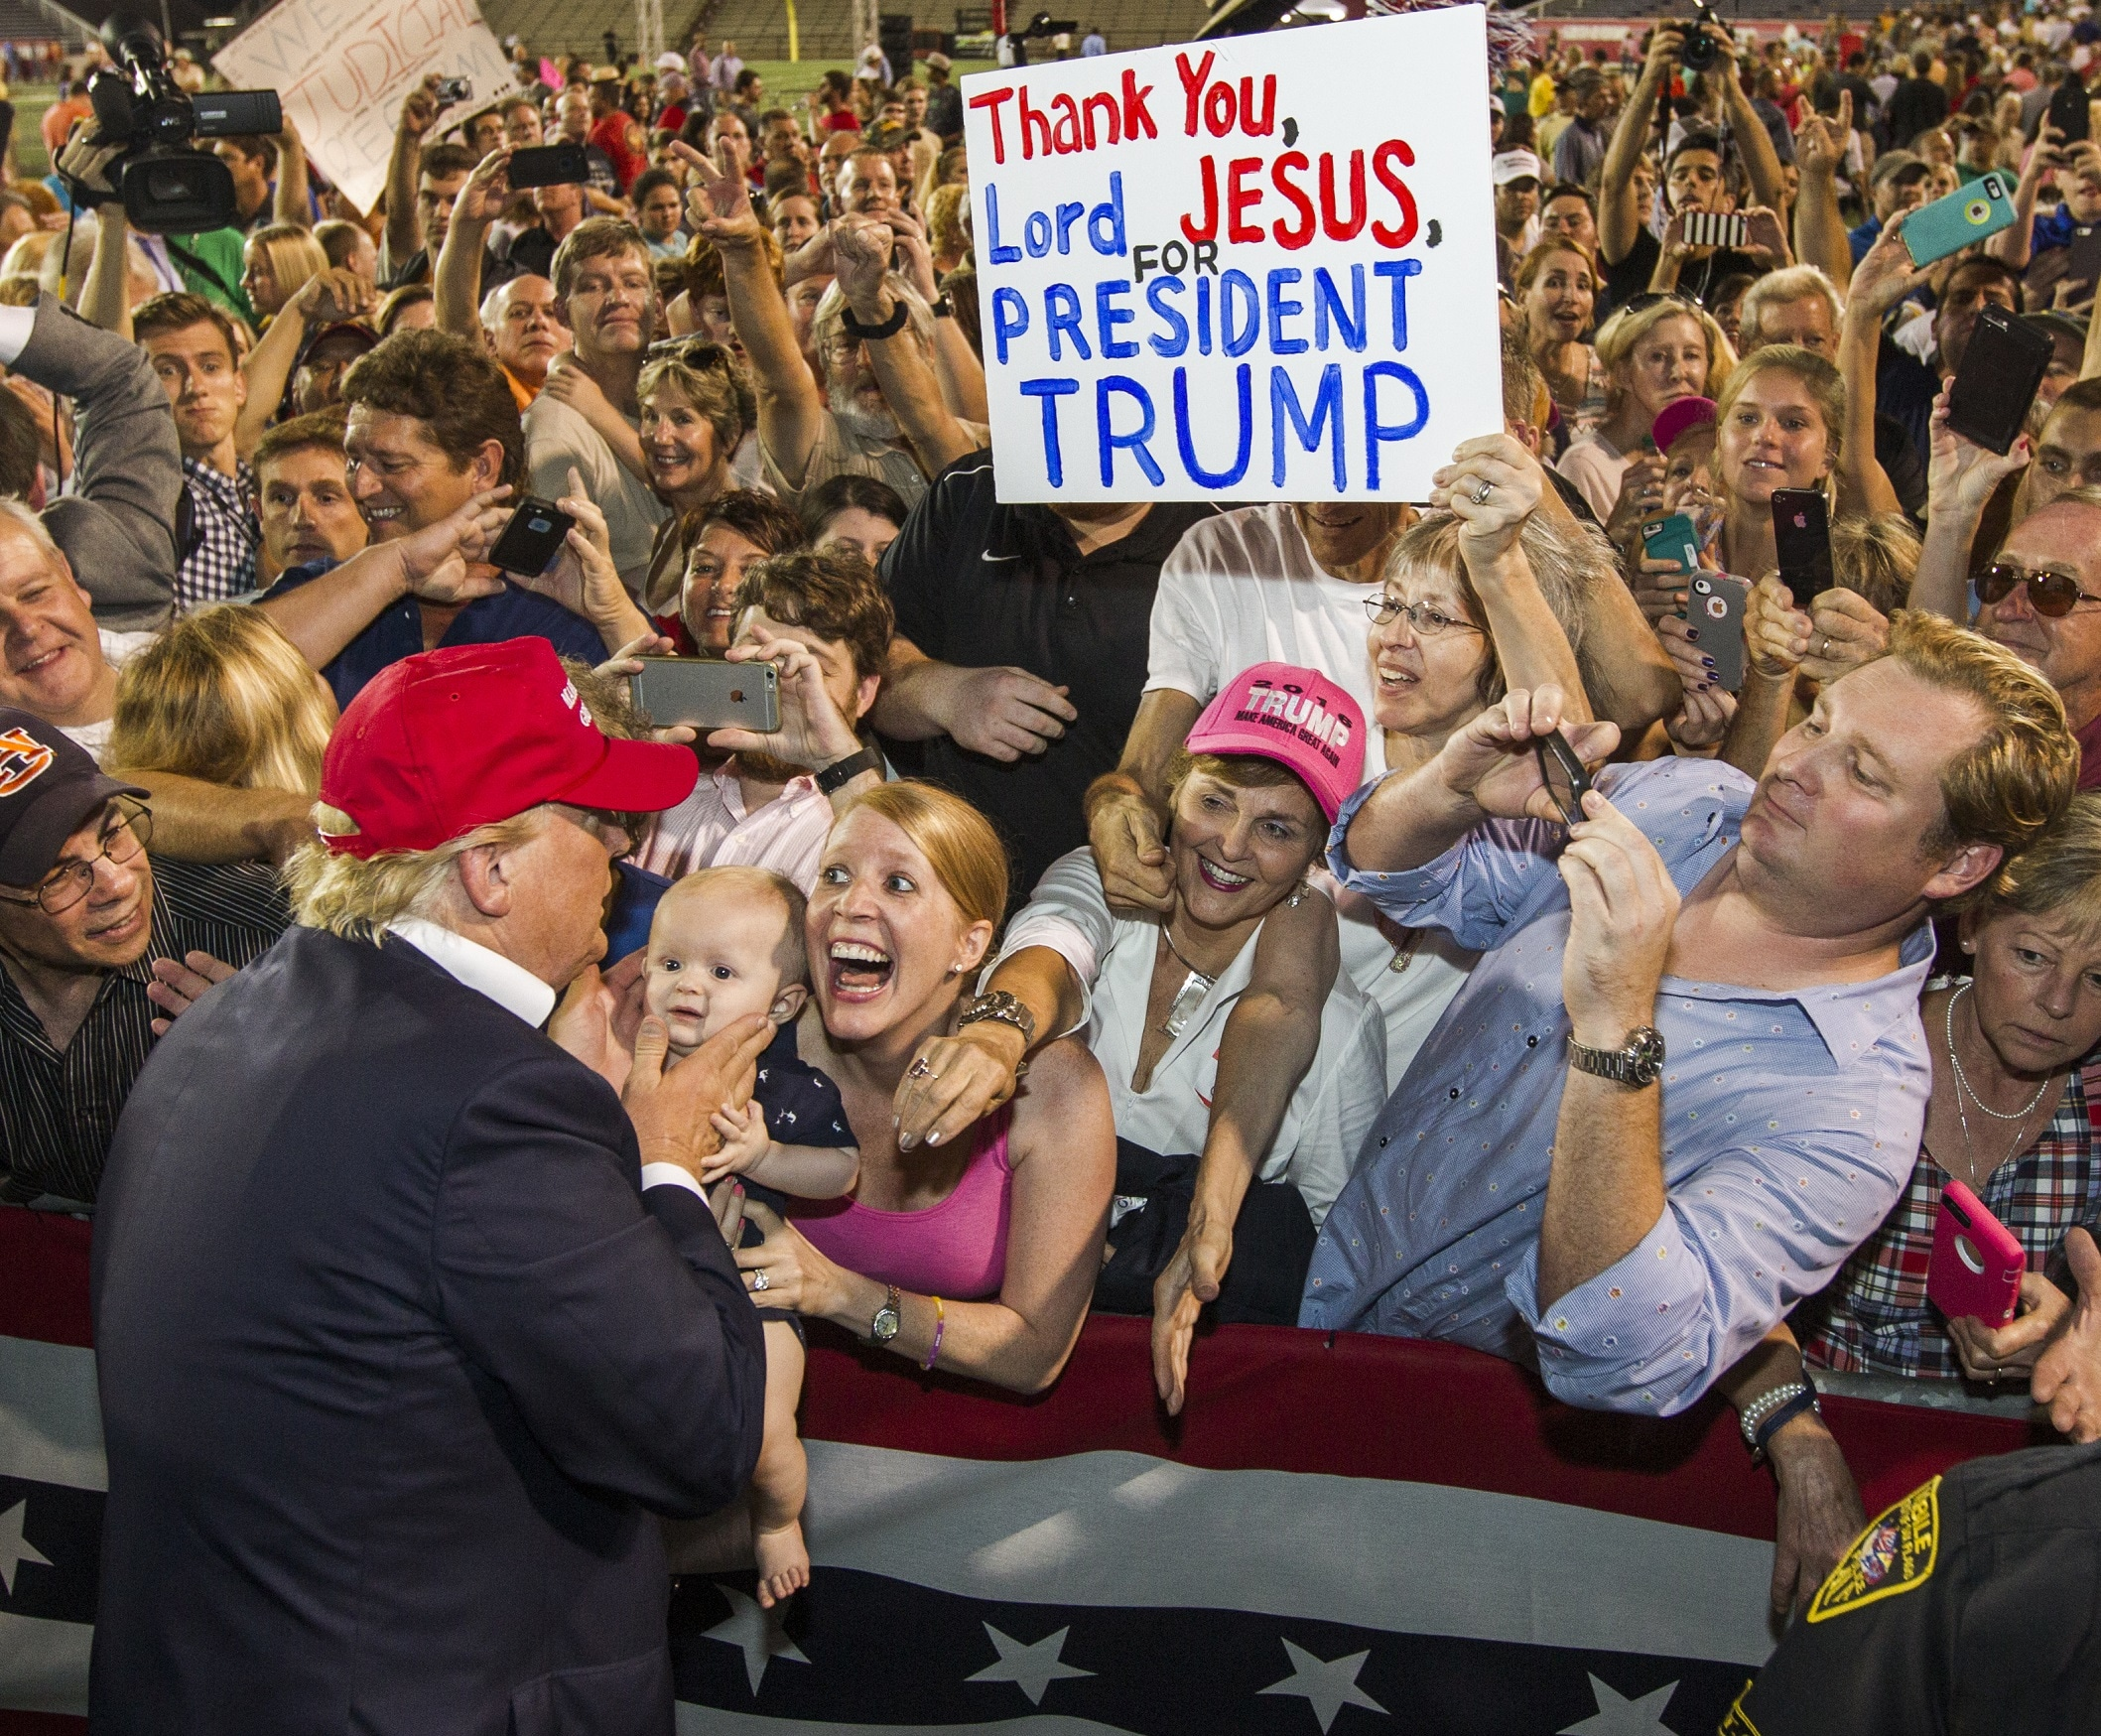 I asked psychologists to analyze Trump supporters. This is what I learned.  - The Washington Post